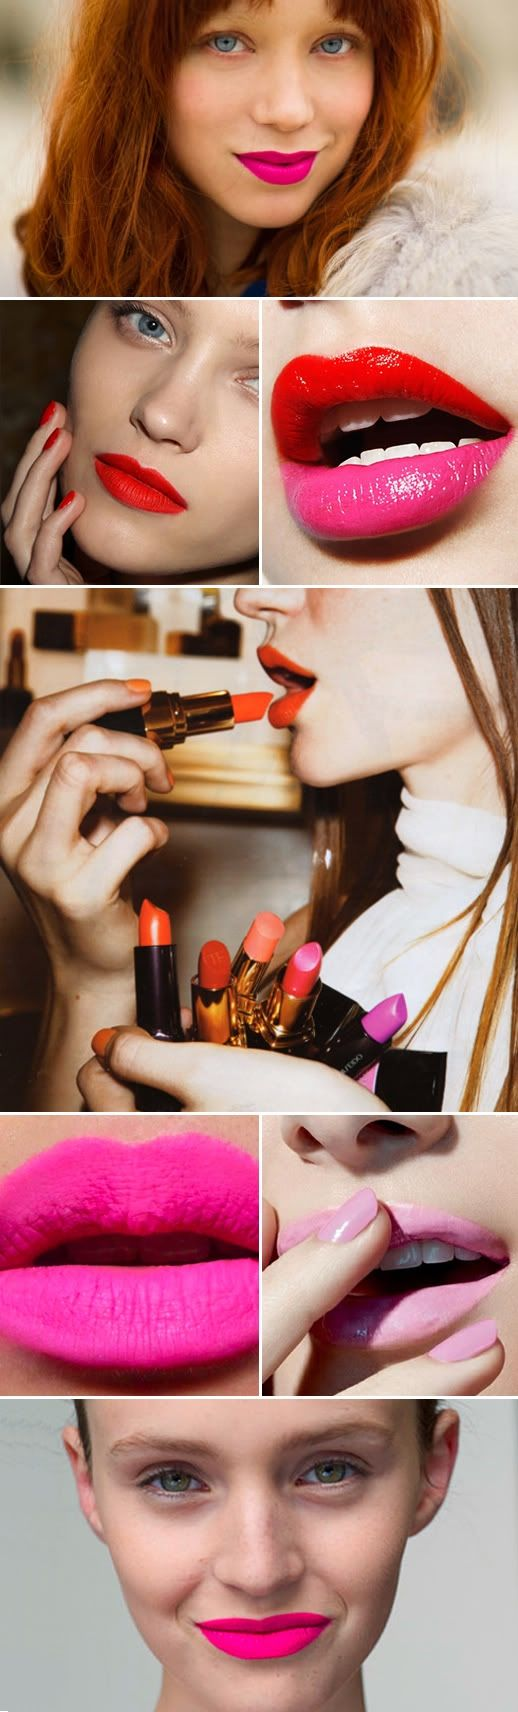 SUMMER BRIGHT LIPS LIPSTICK NEON PINK RED TWO TONE BEAUTY INSPIRATION SUMMER MATCHING NAILS MANICURE LE FASHION BLOG